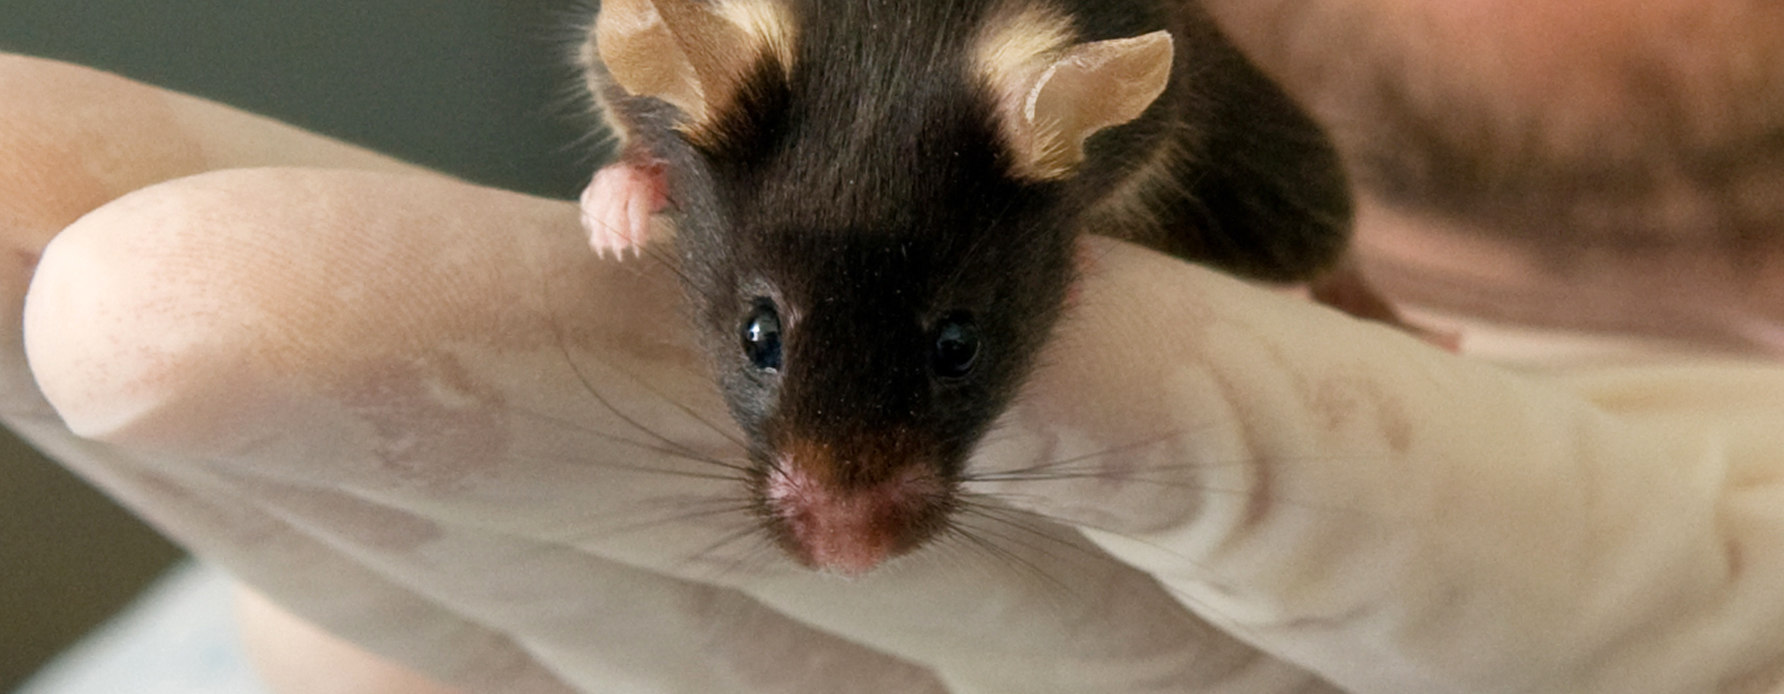 Rat resting in a gloved hand